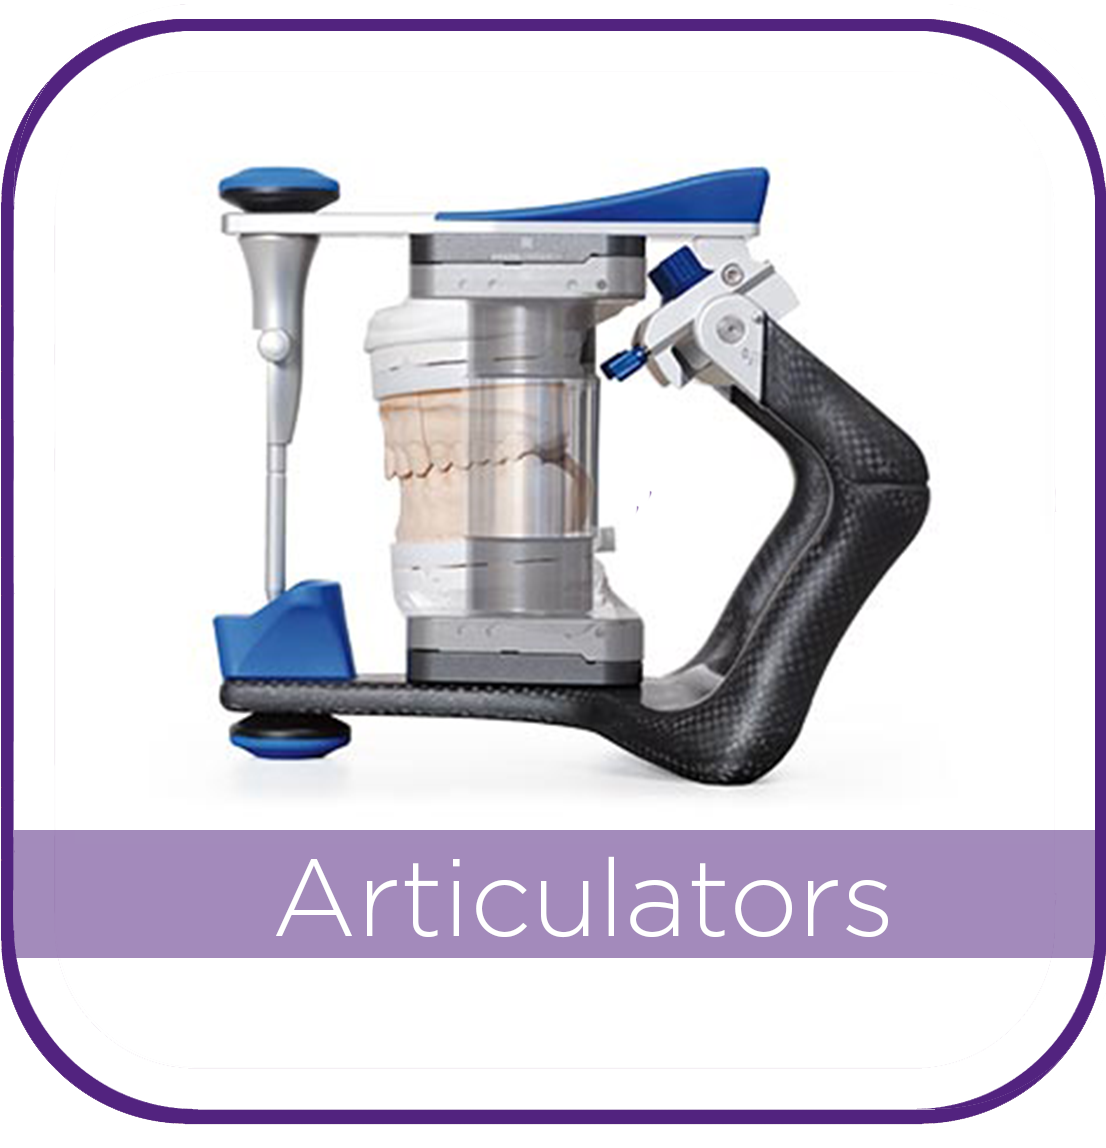 Articulators and Accessories